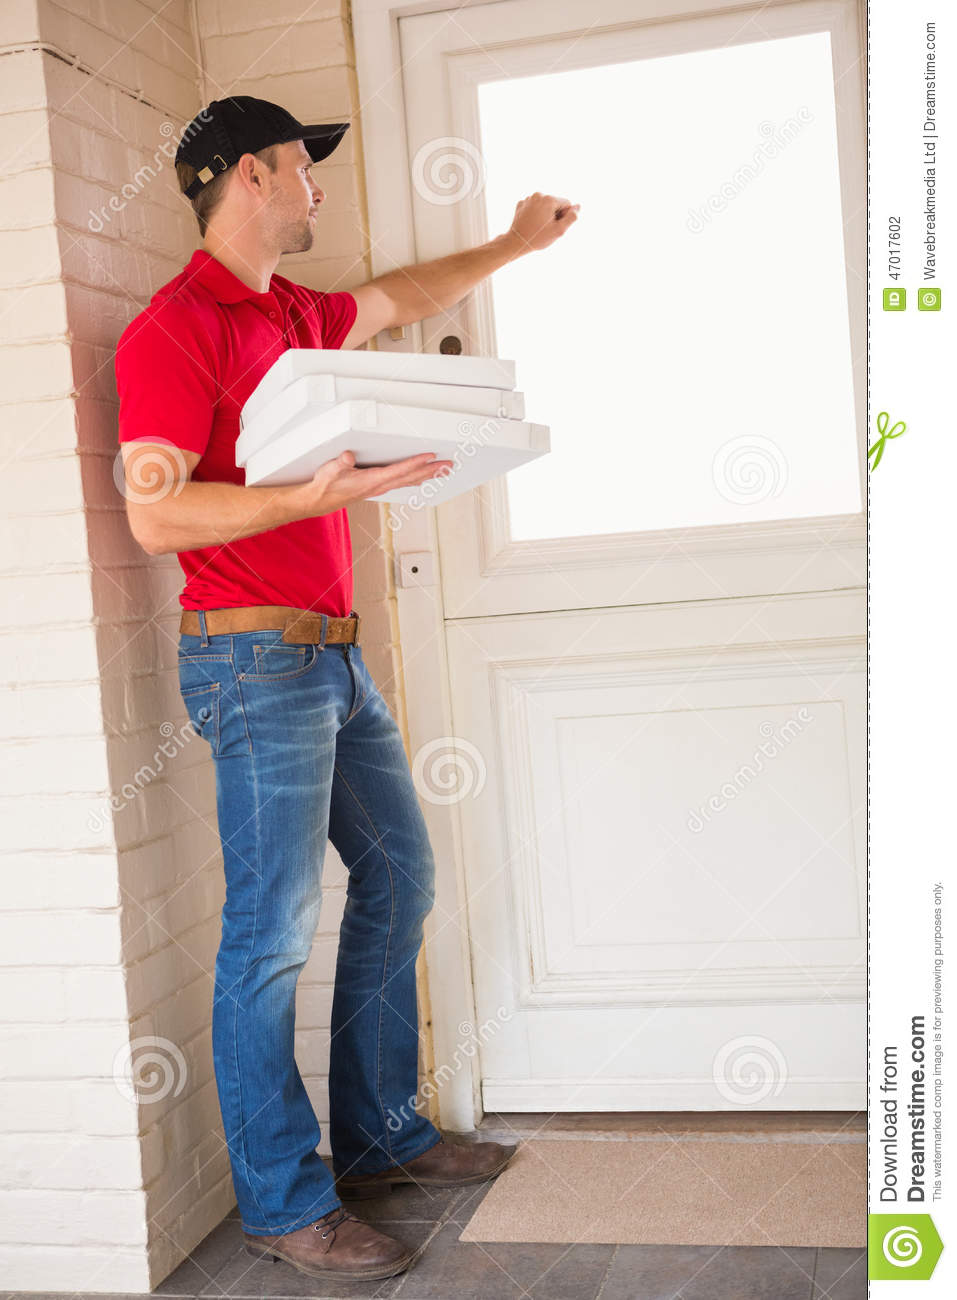 Delivery man holding pizza while knocking on the door & Delivery Man Holding Pizza While Knocking On The Door Stock Photo ... Pezcame.Com